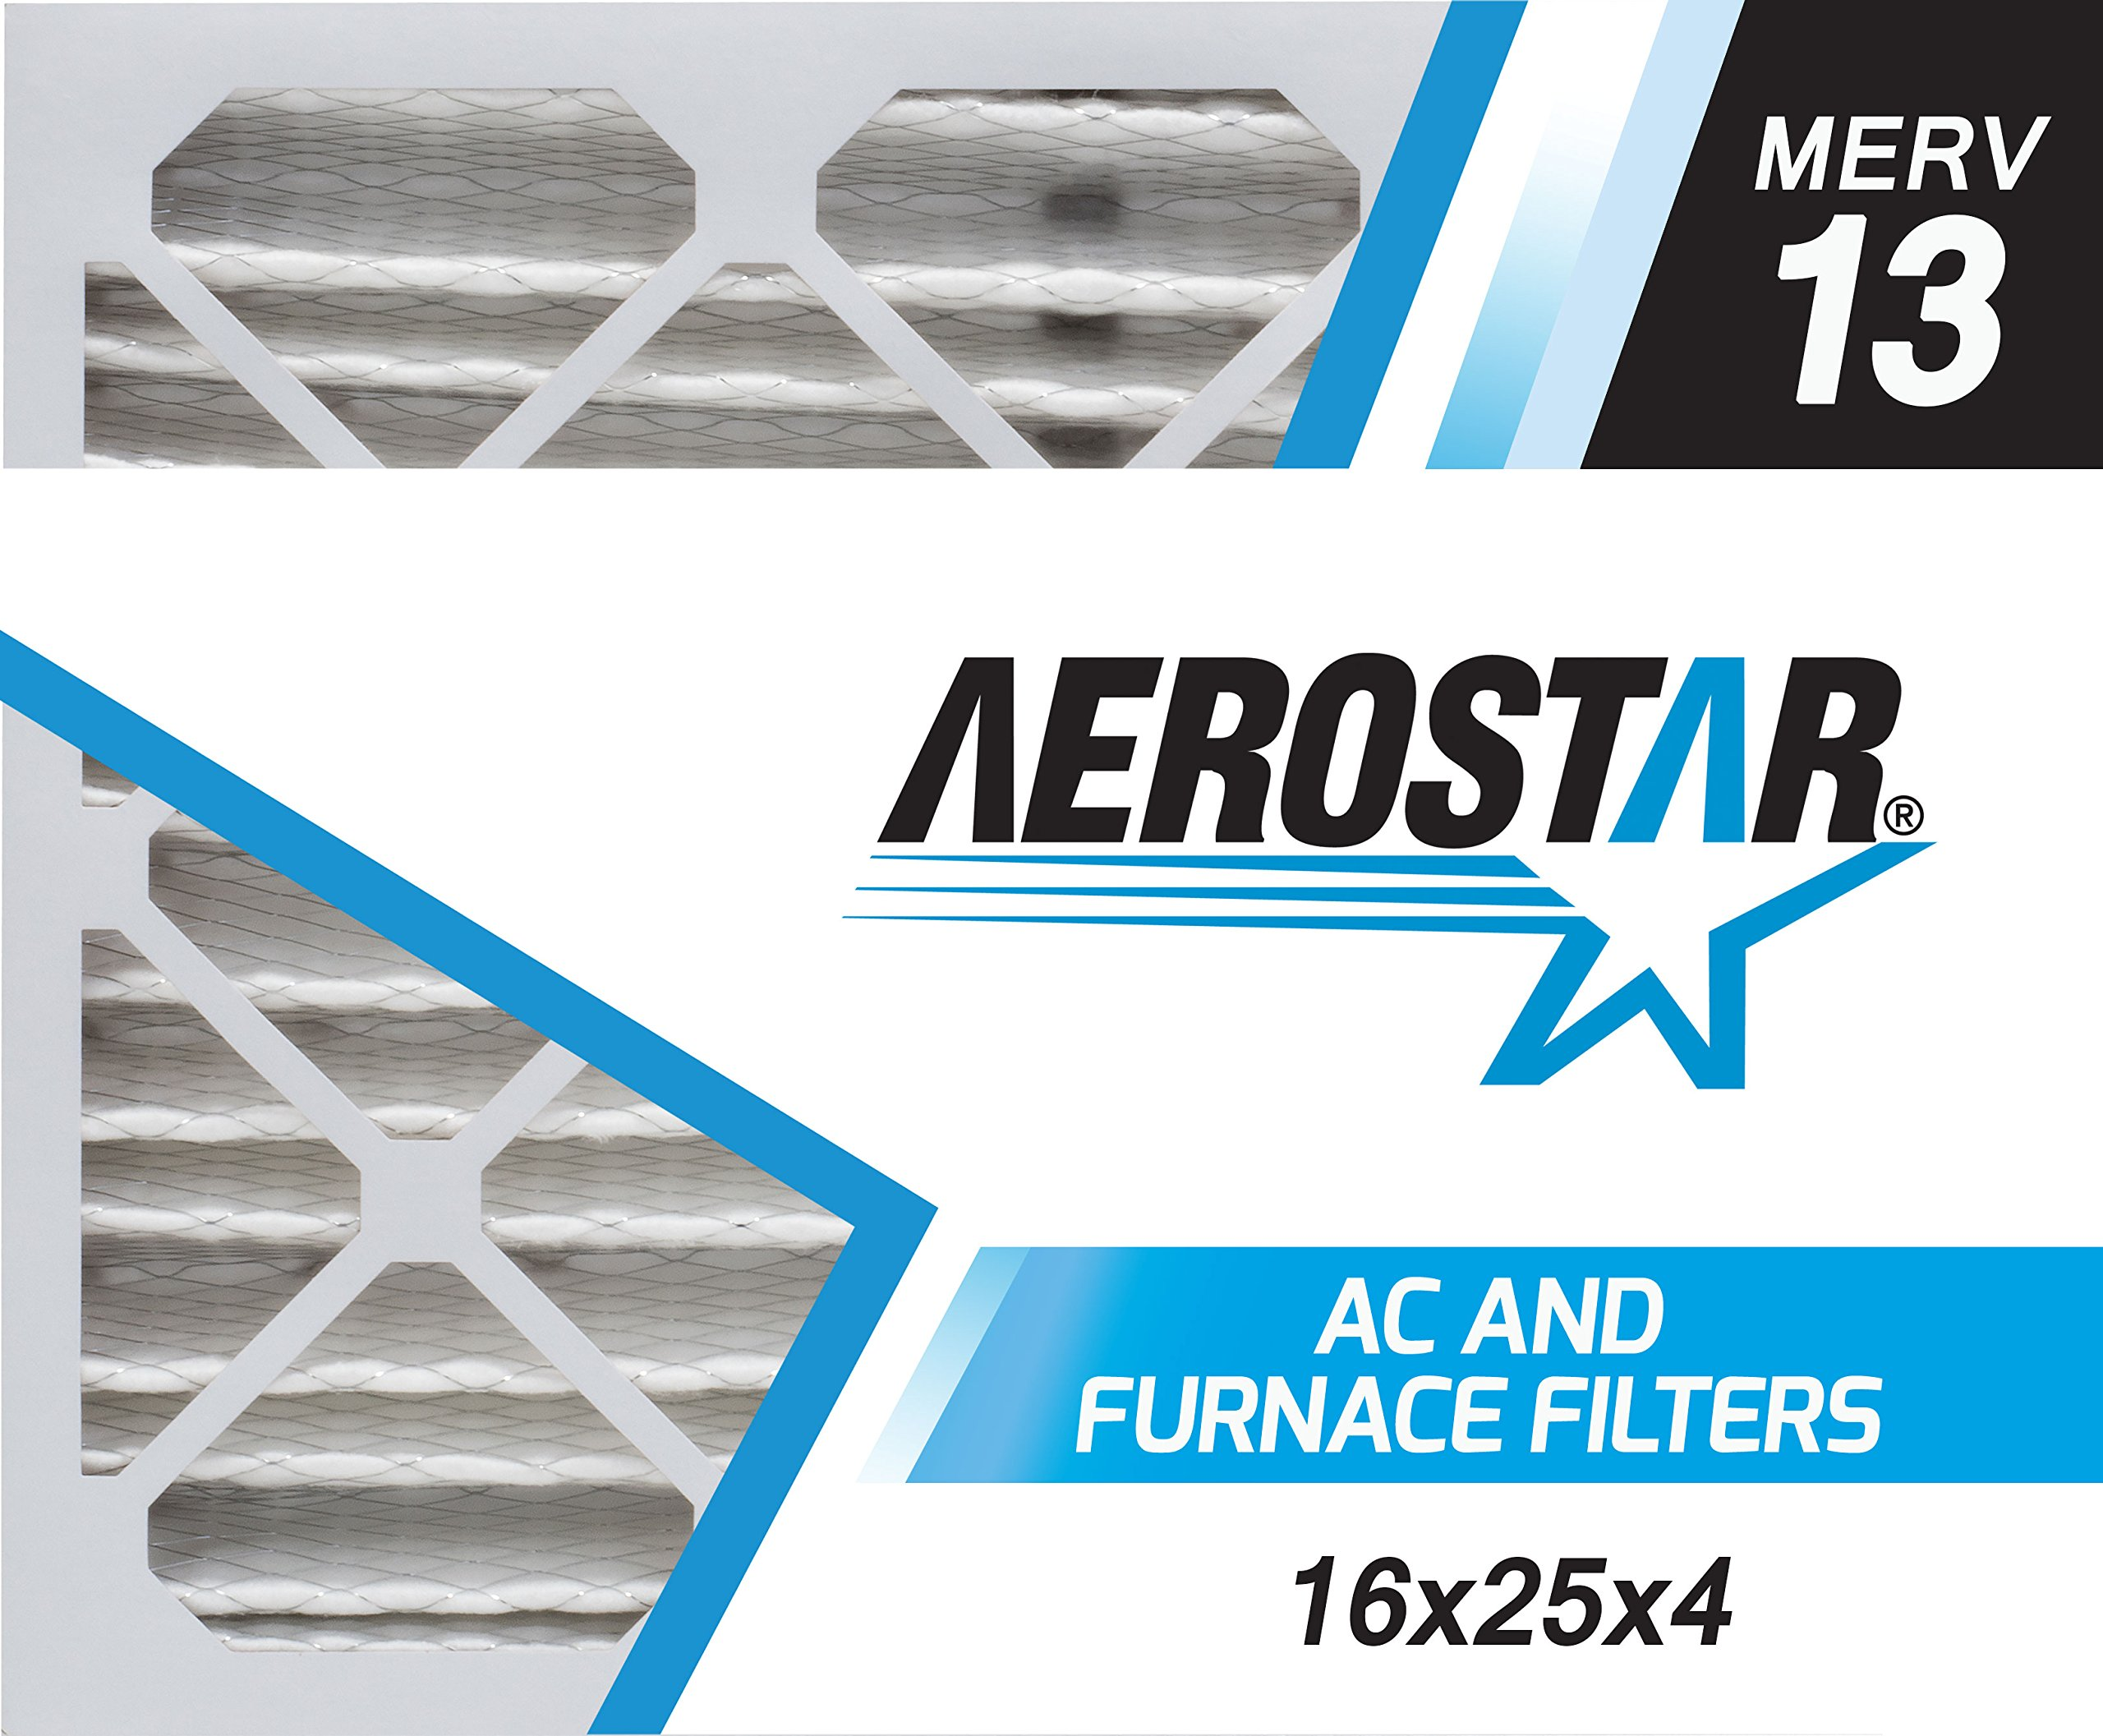 Aerostar 16x25x4 MERV 13, Pleated Air Filter, 16 x 25 x 4, Box of 4, Made in The USA